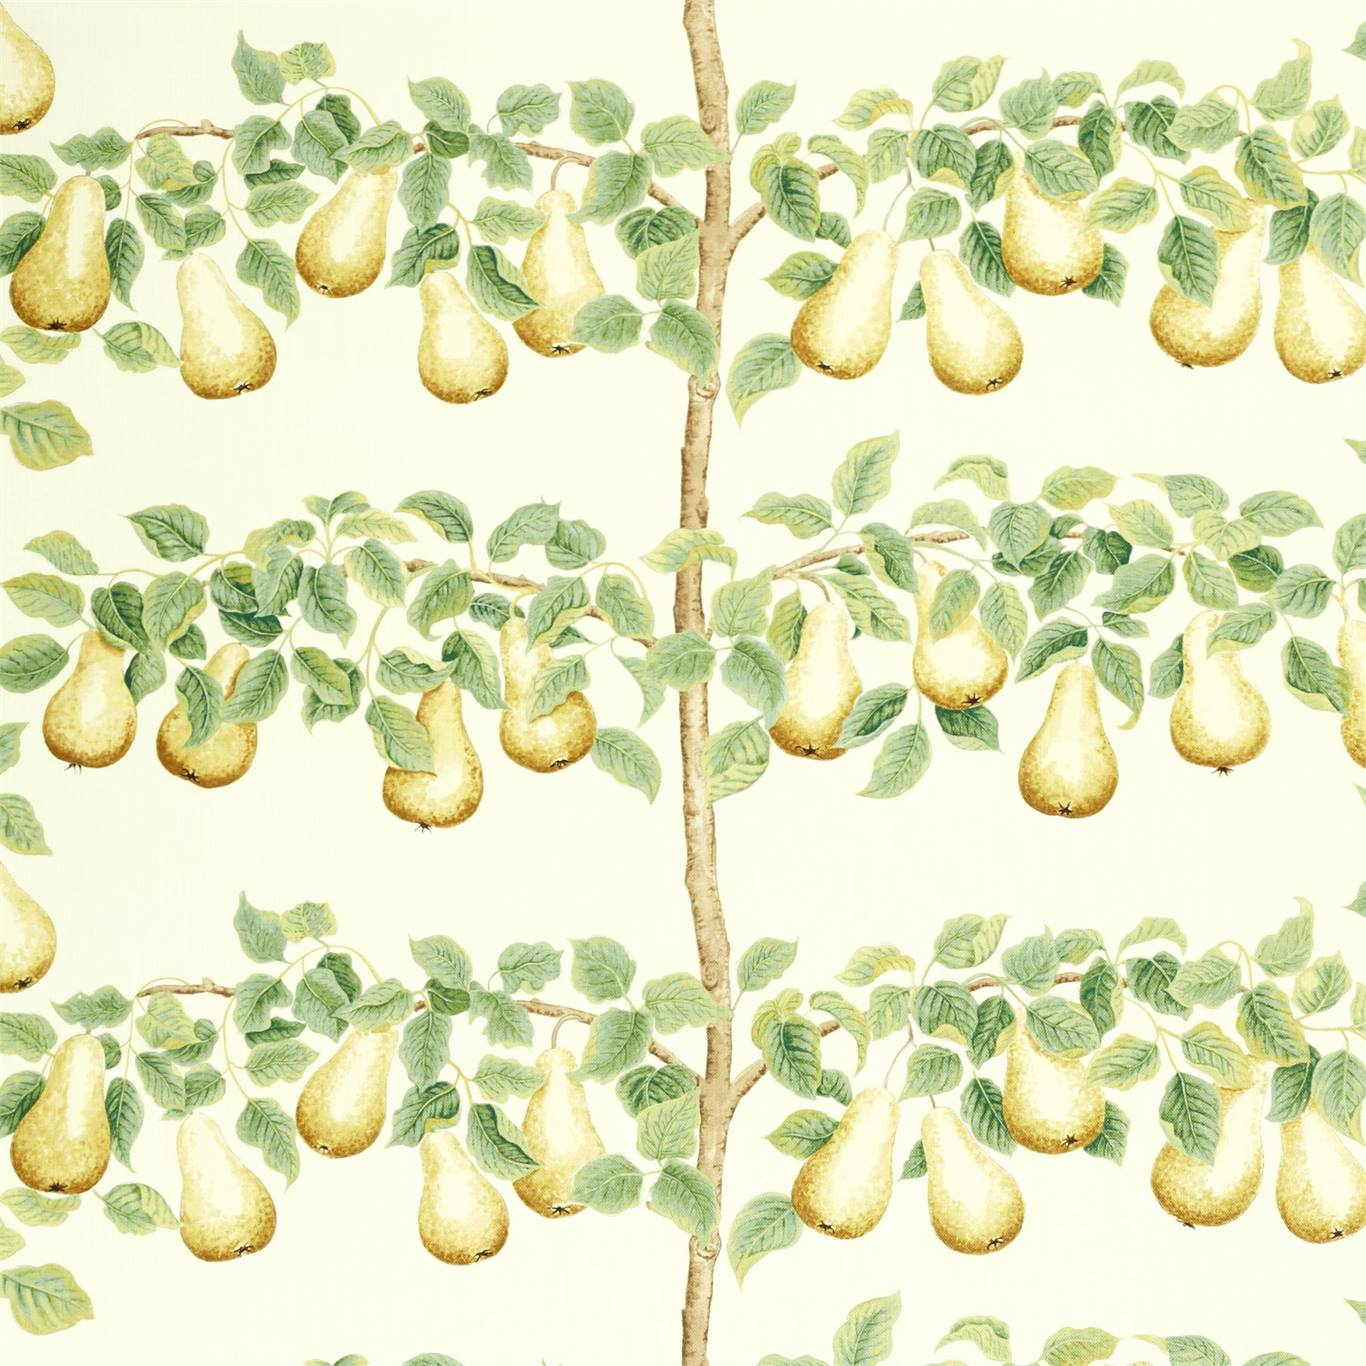 DNTF226735 Collection - National Trust Fabric